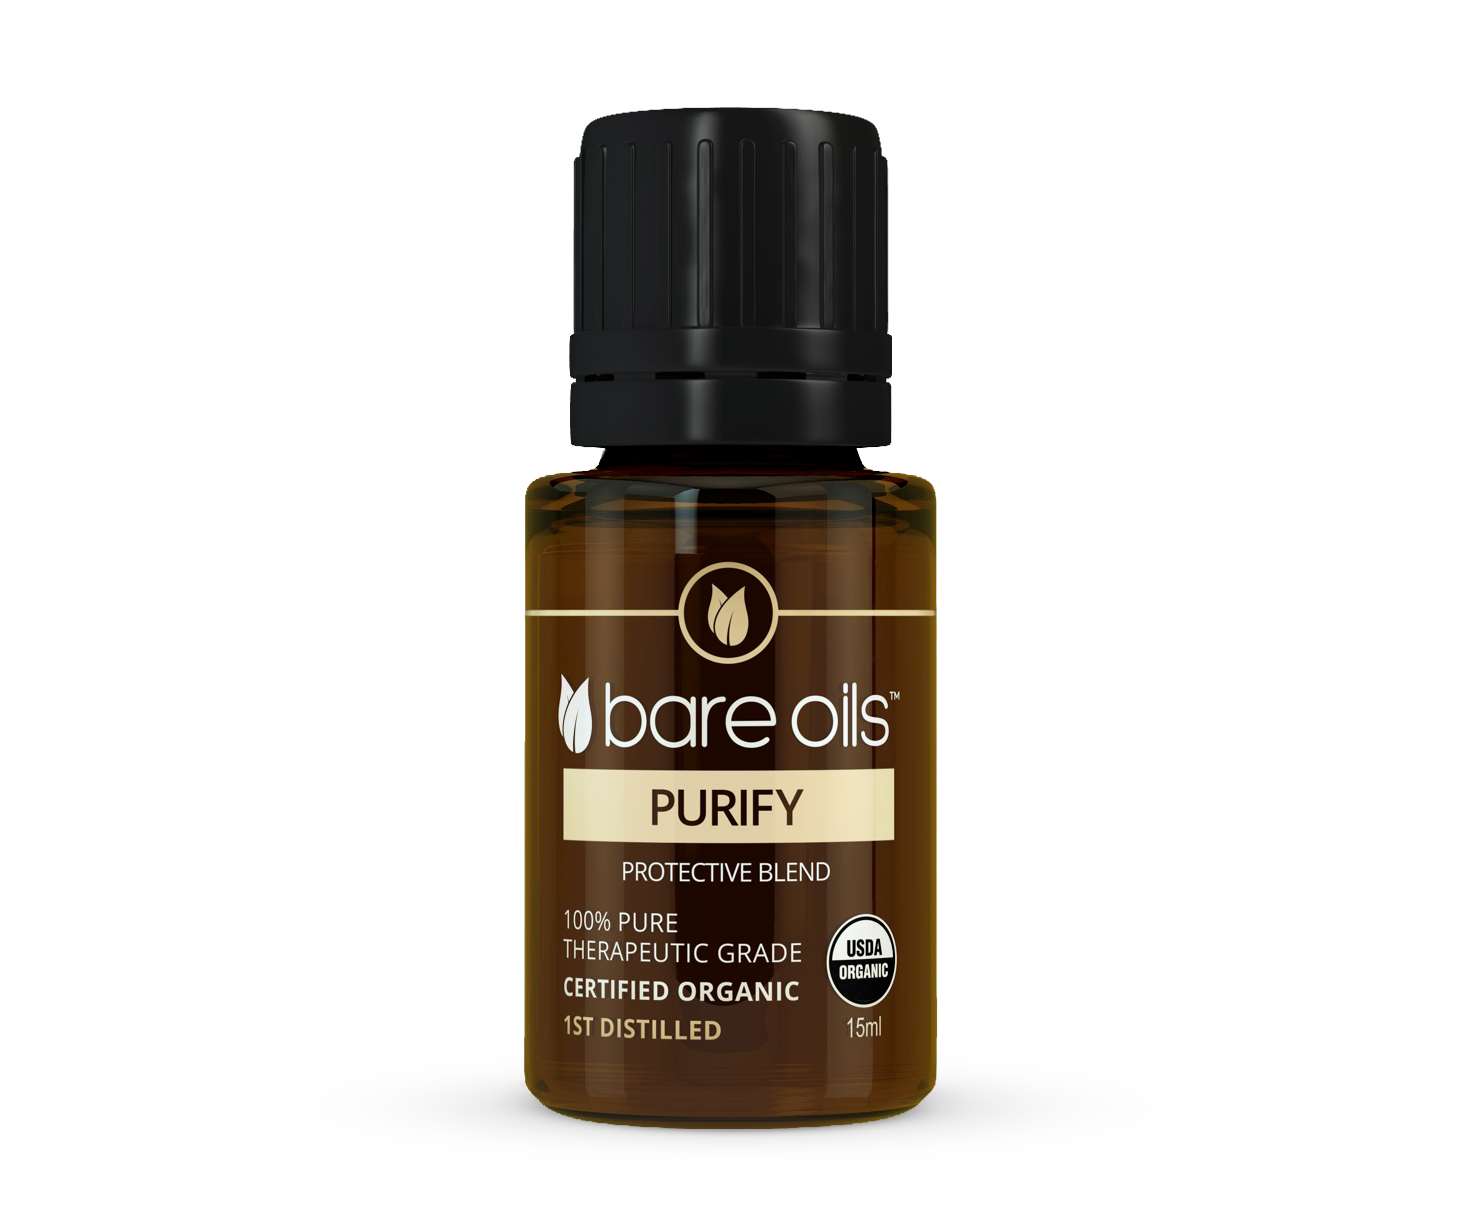 purify-protective-blend-oil